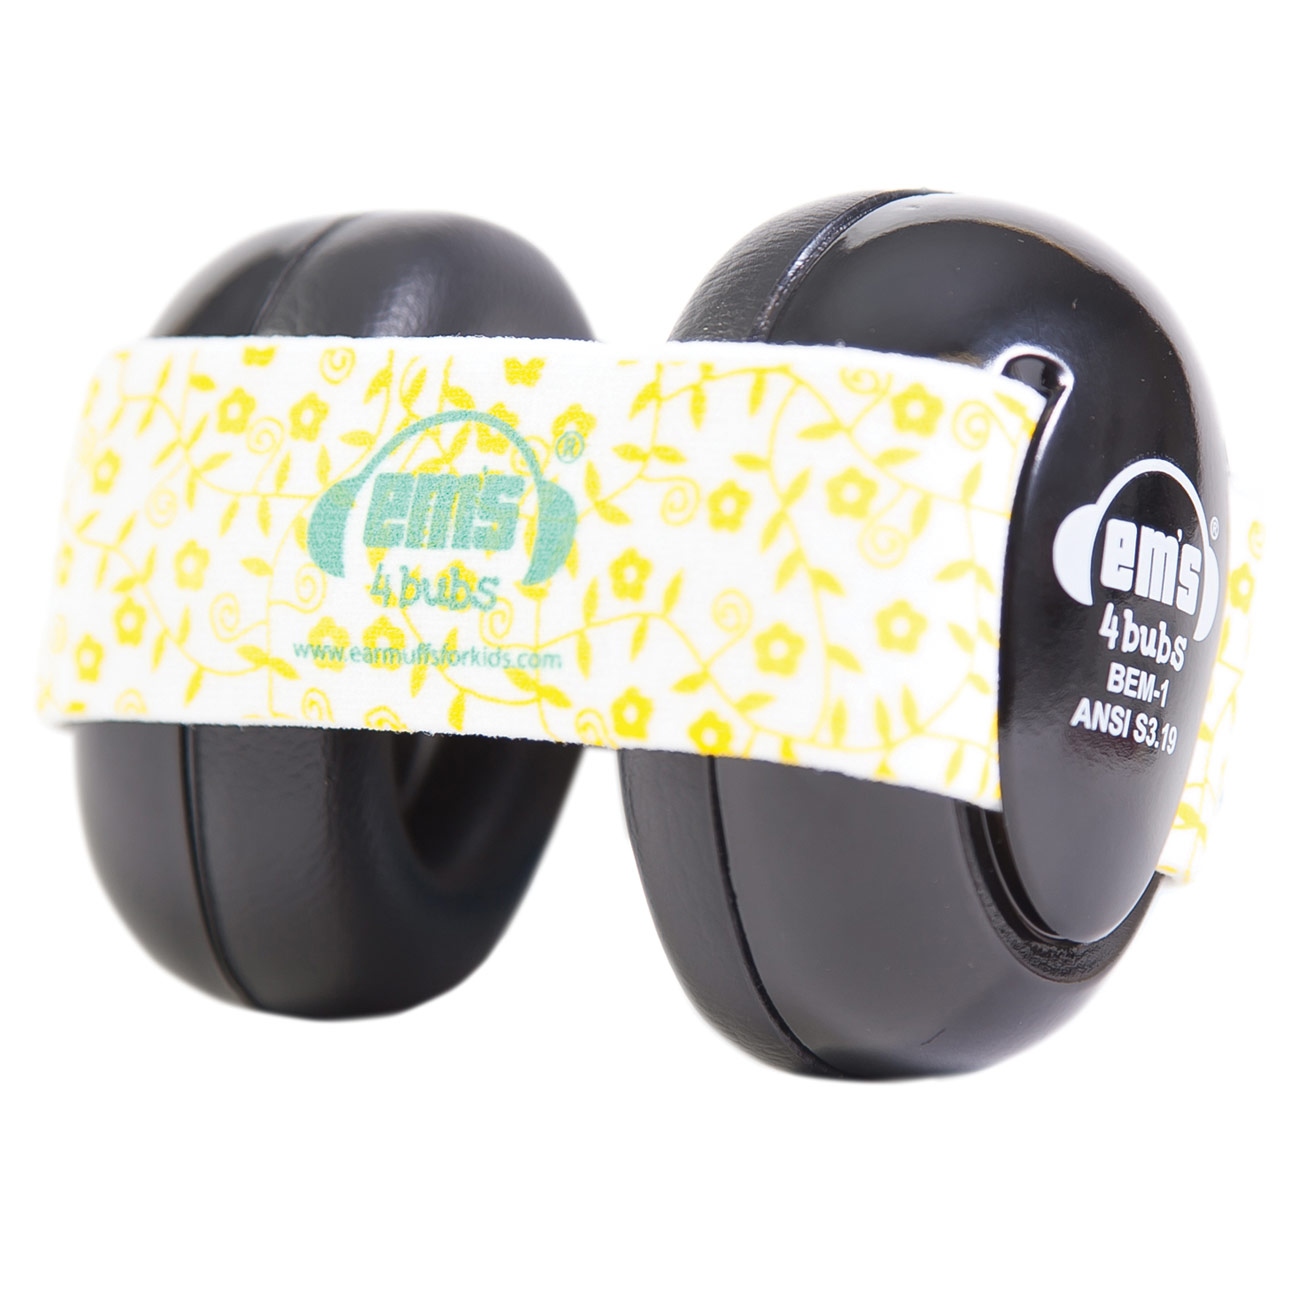 Ems 4 Bubs Baby Hearing Protection Black Earmuffs - Lemon Floral